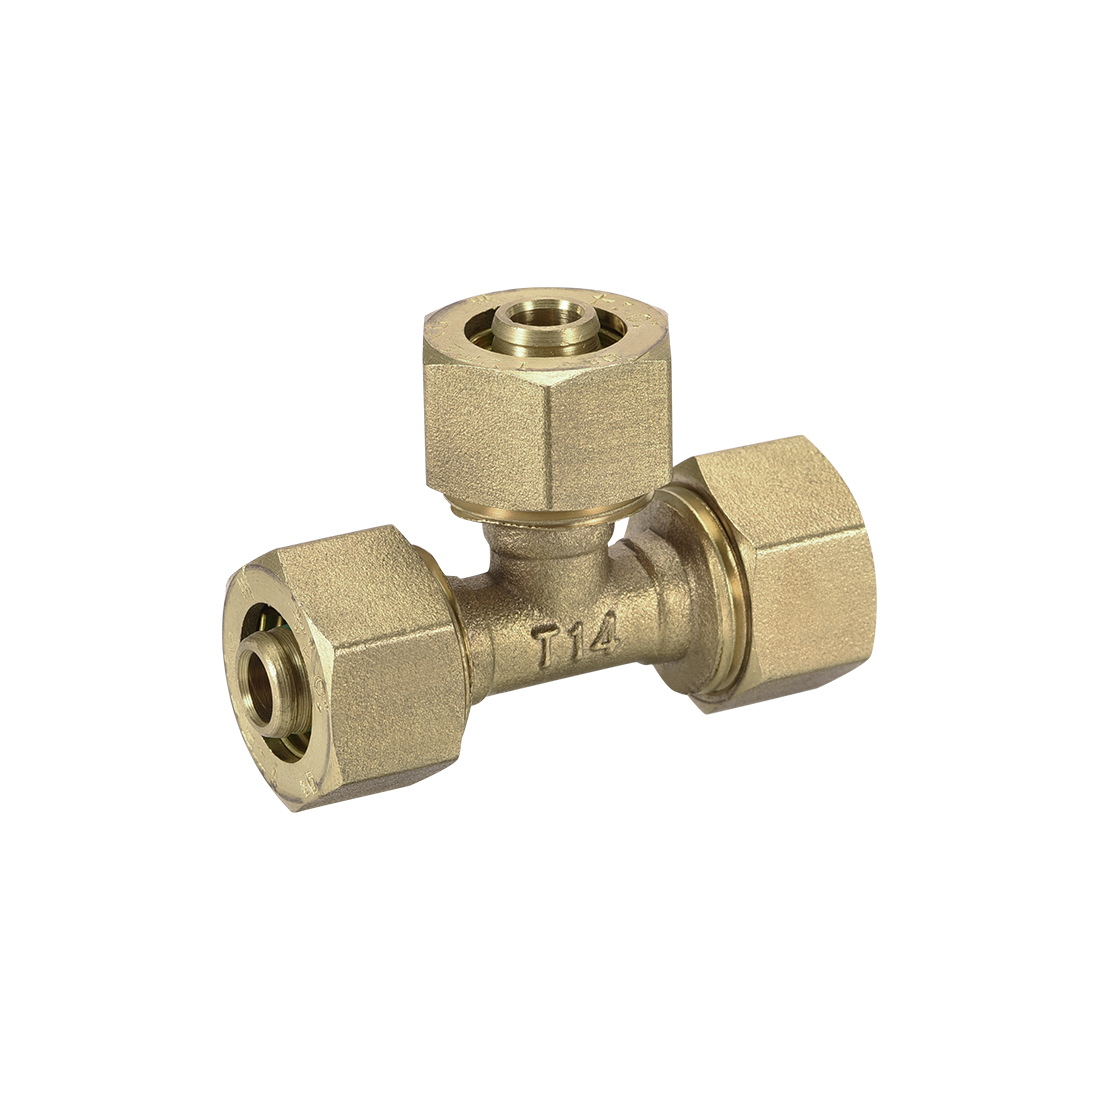 Brass Compression Tube Fitting Tee 3/8 x 3/8 x 3/8 Tube ID Flared Fitting